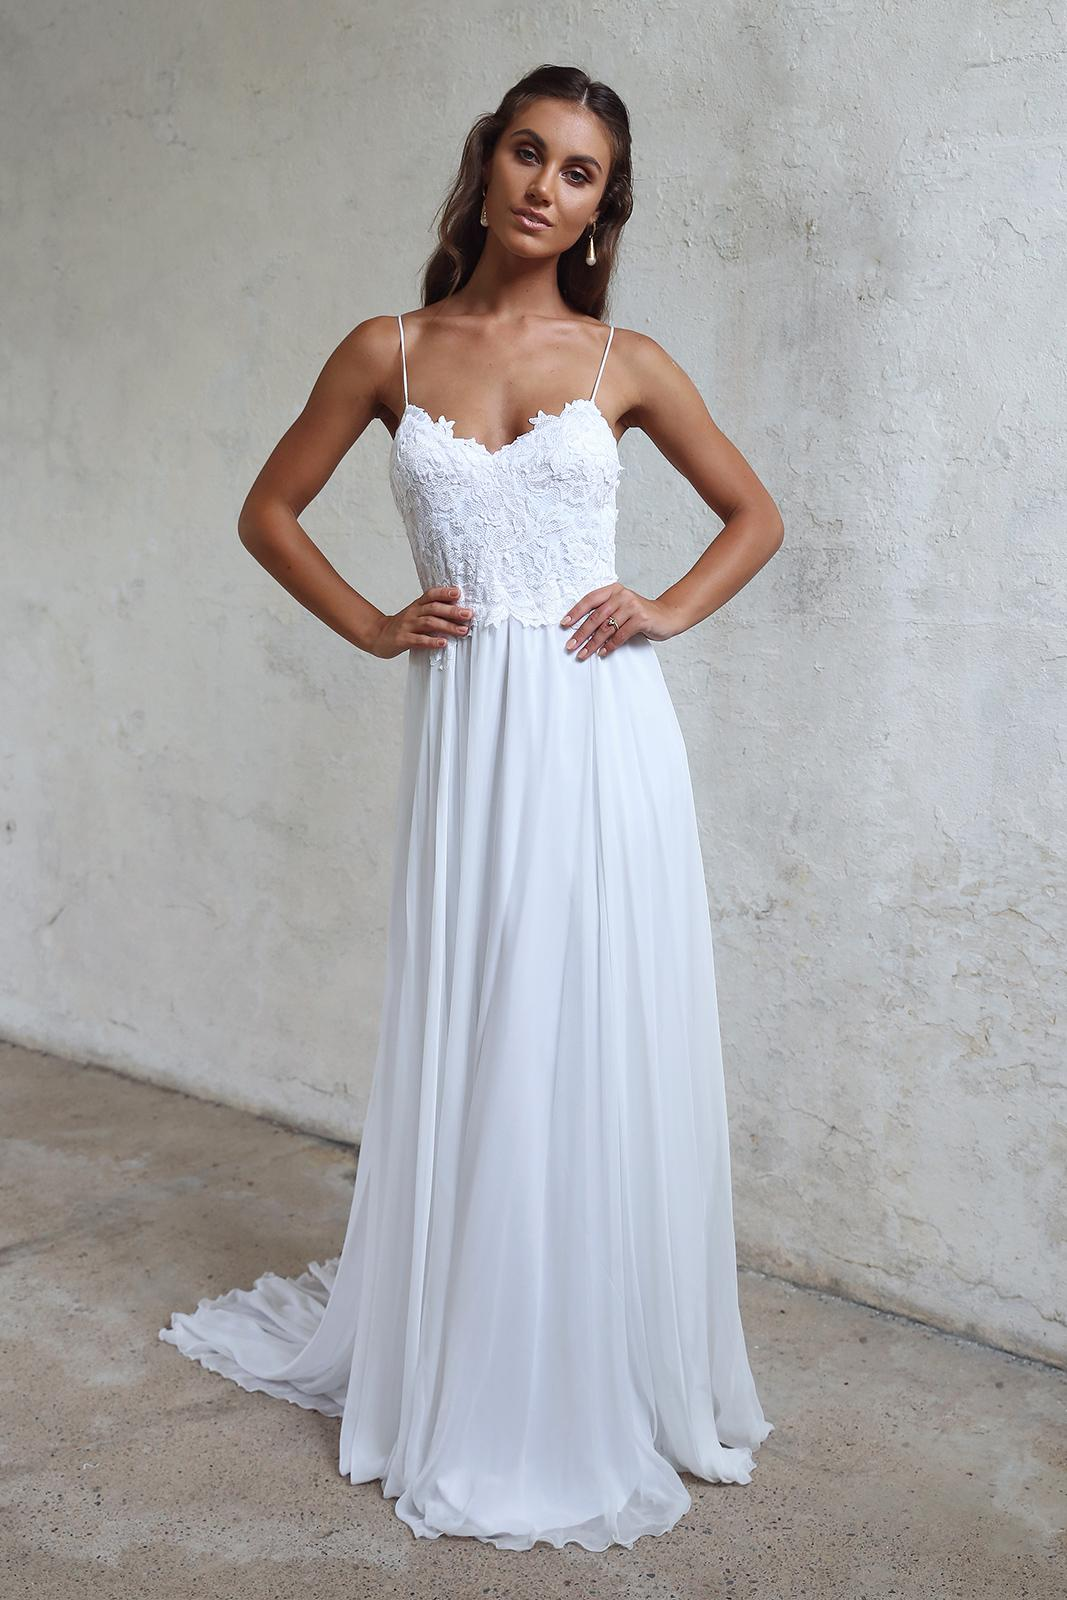 2018 Sexy Beach Wedding Dress Summer Beach Wedding